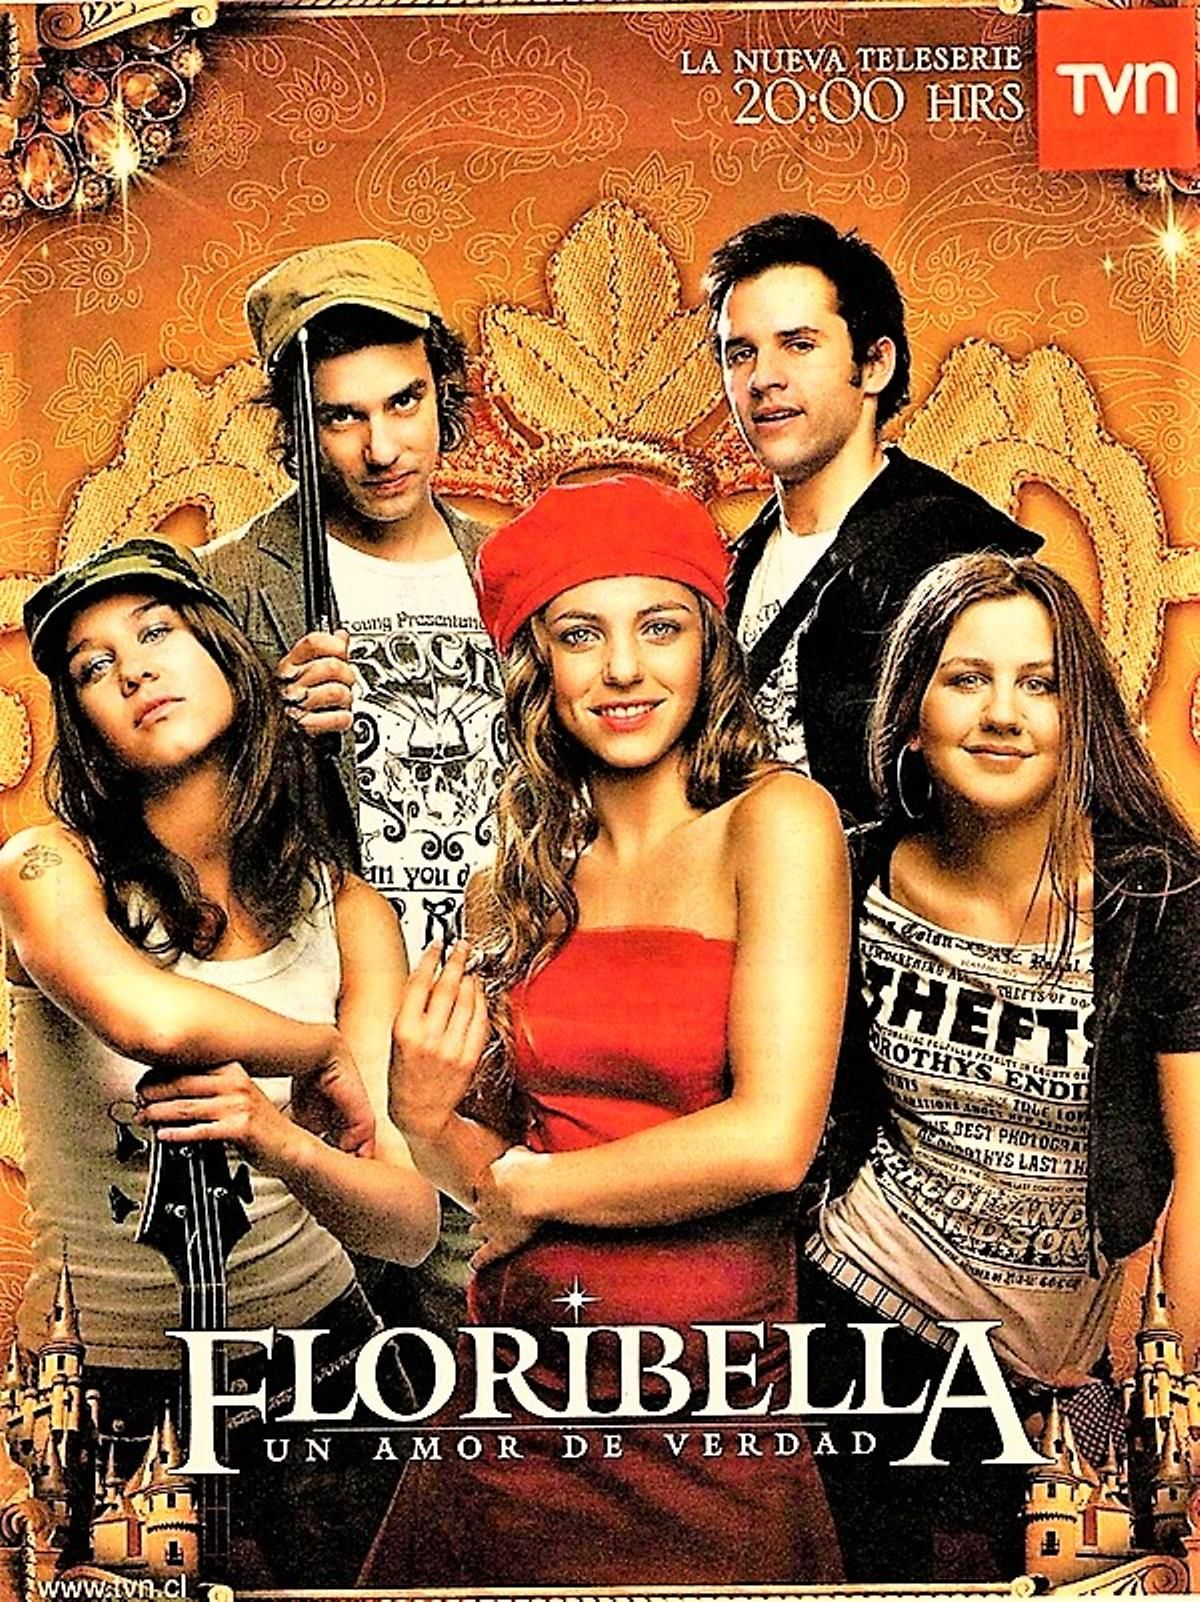 Floribella 2006 07 Tvn Tv Chile Series Y Peliculas Telenovela Actores